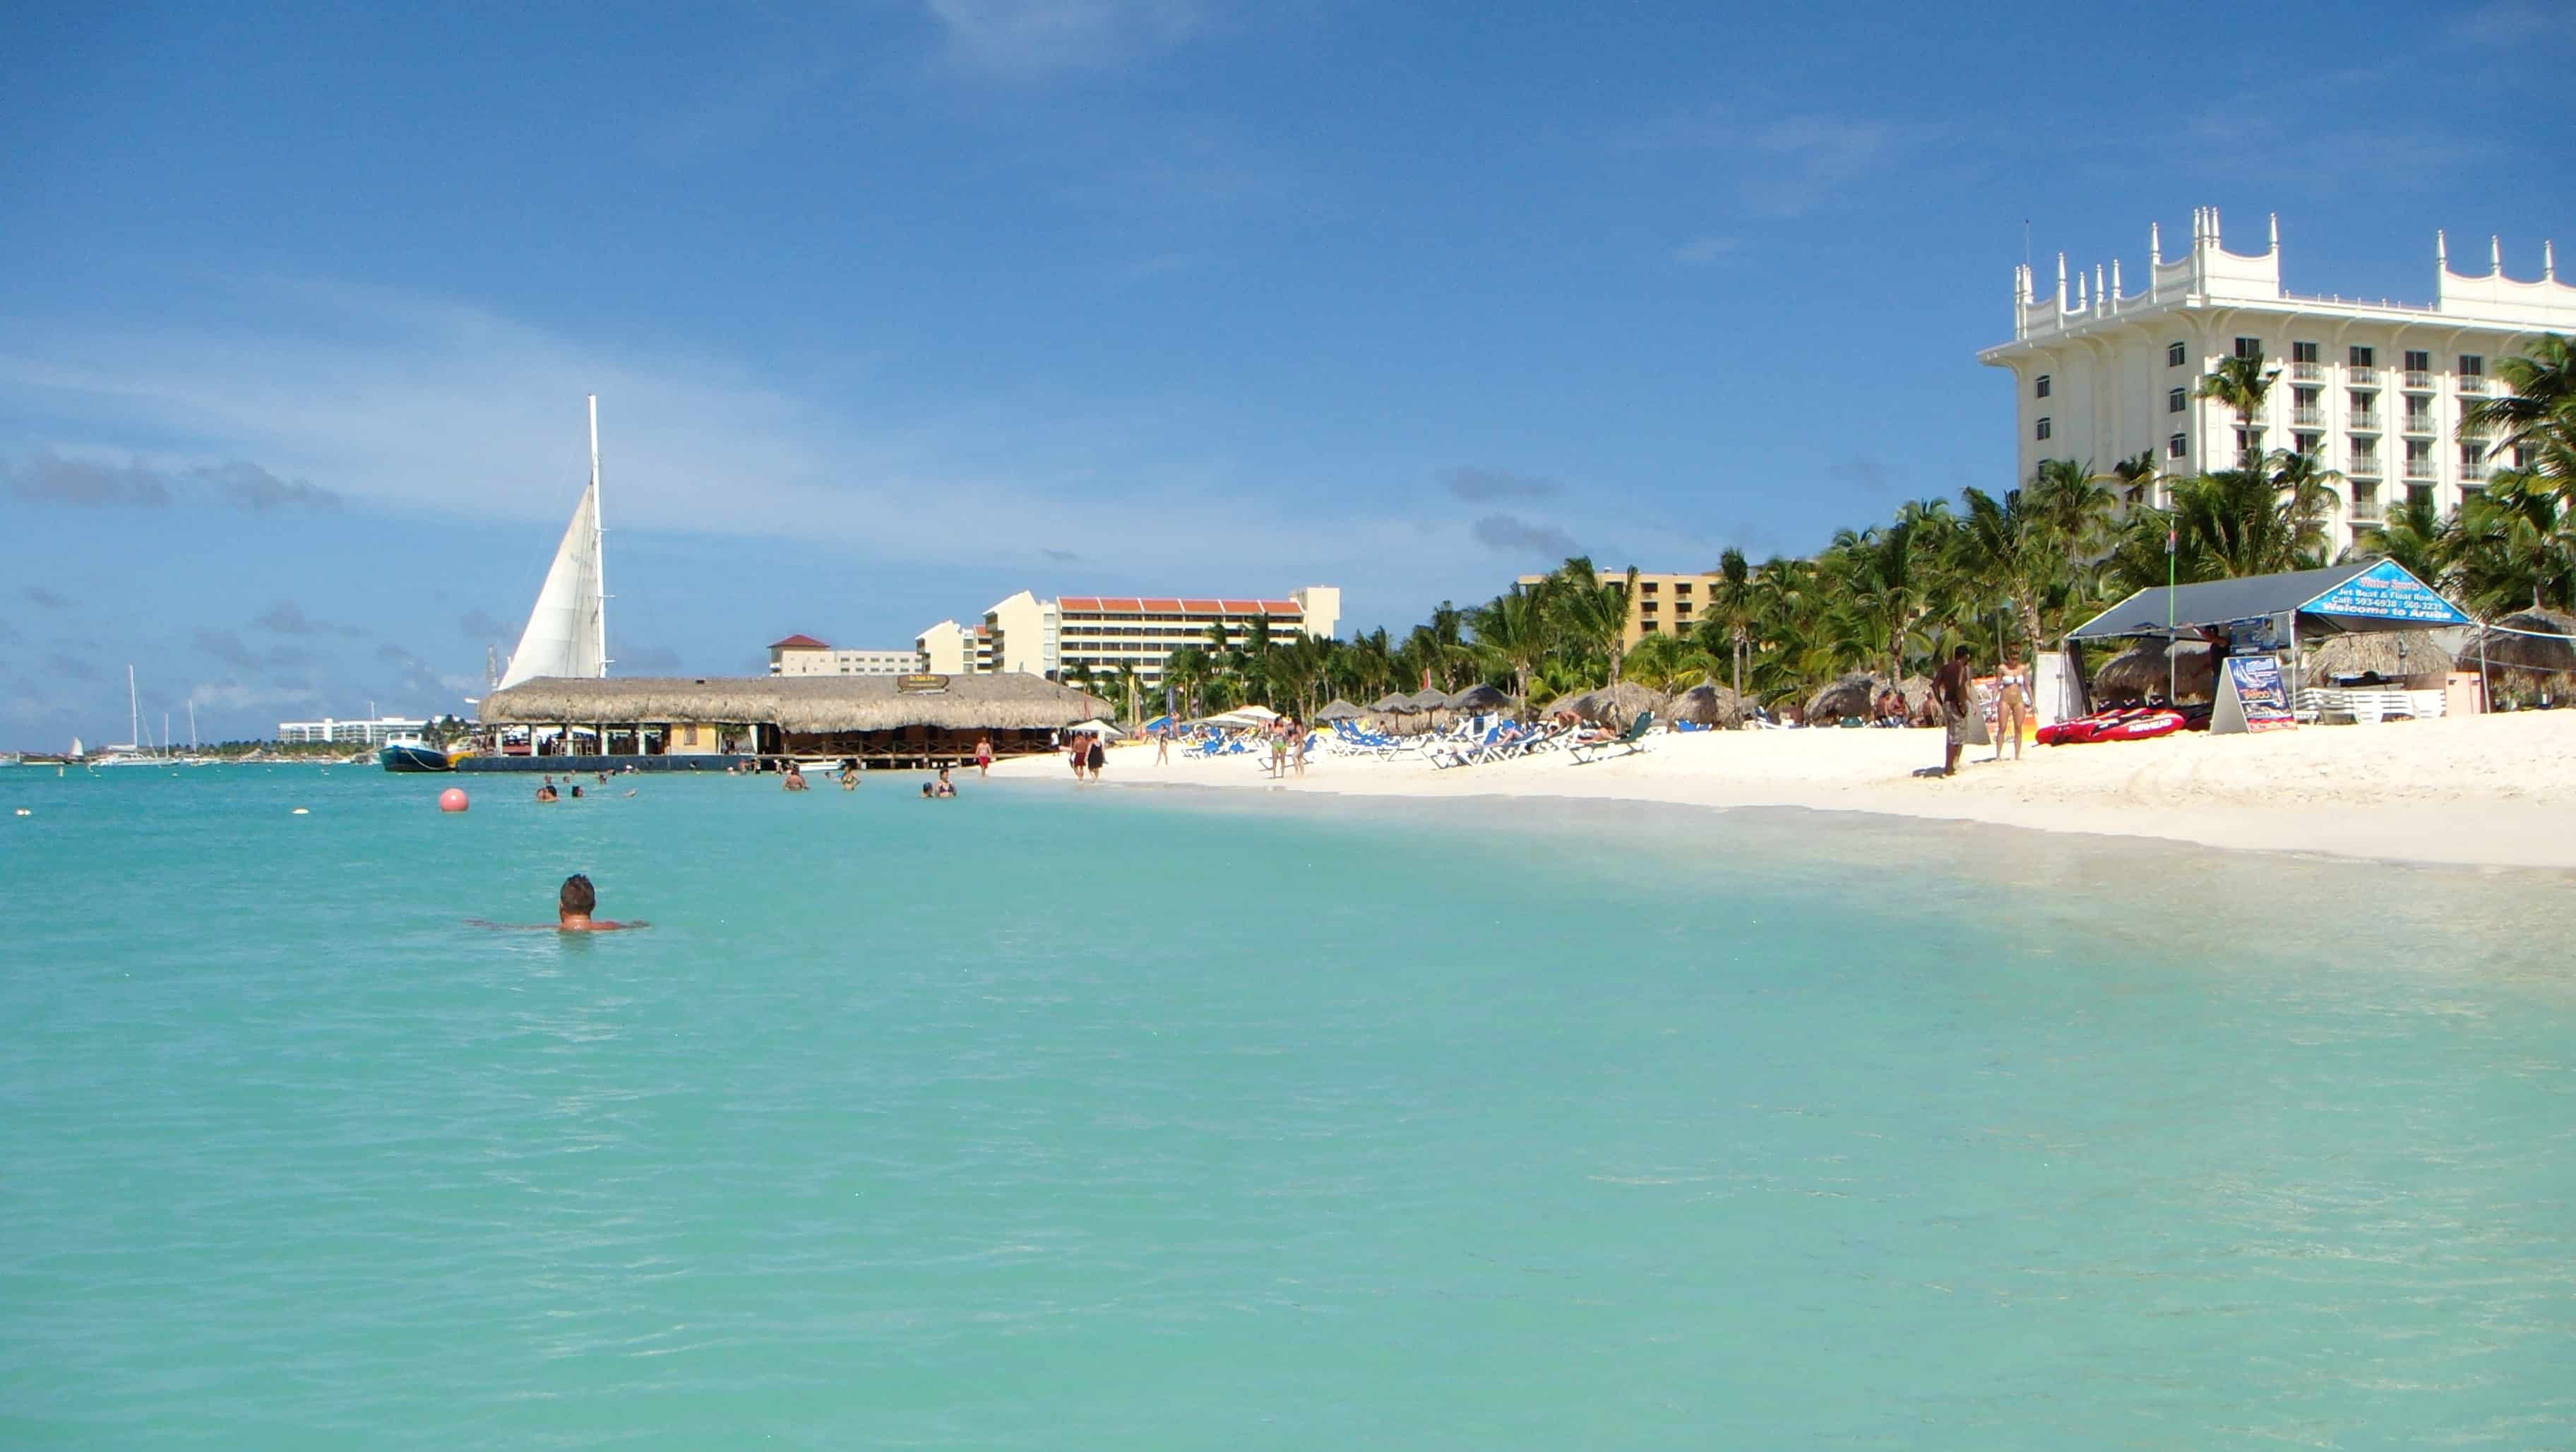 Aruba - Best Caribbean Islands for Family Vacations